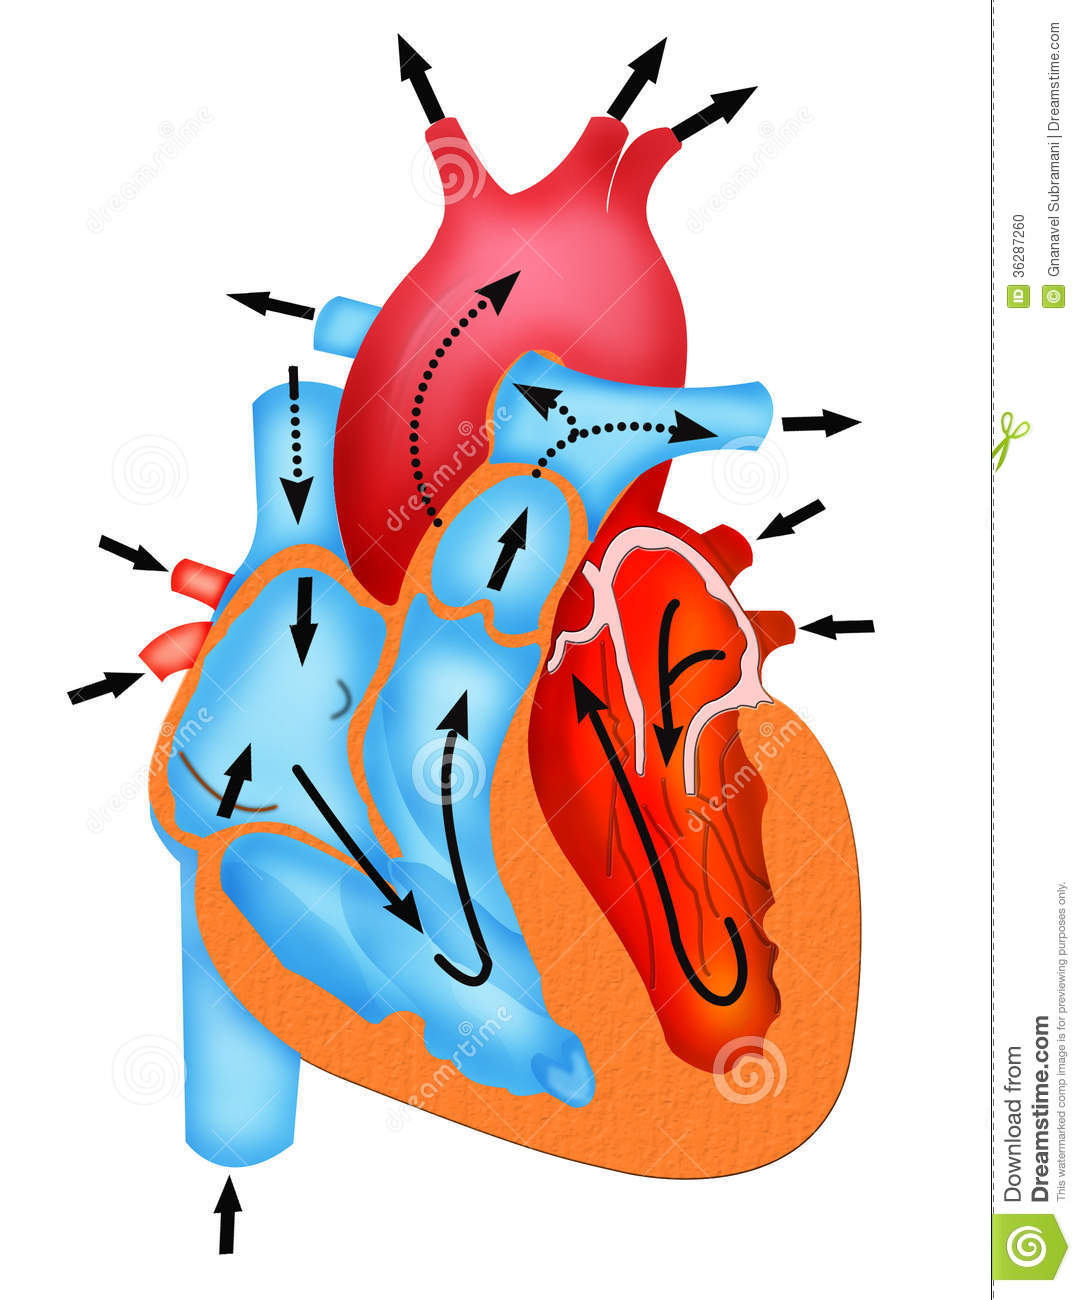 Pathway Of Blood Flow Through The Heart Stock Illustration